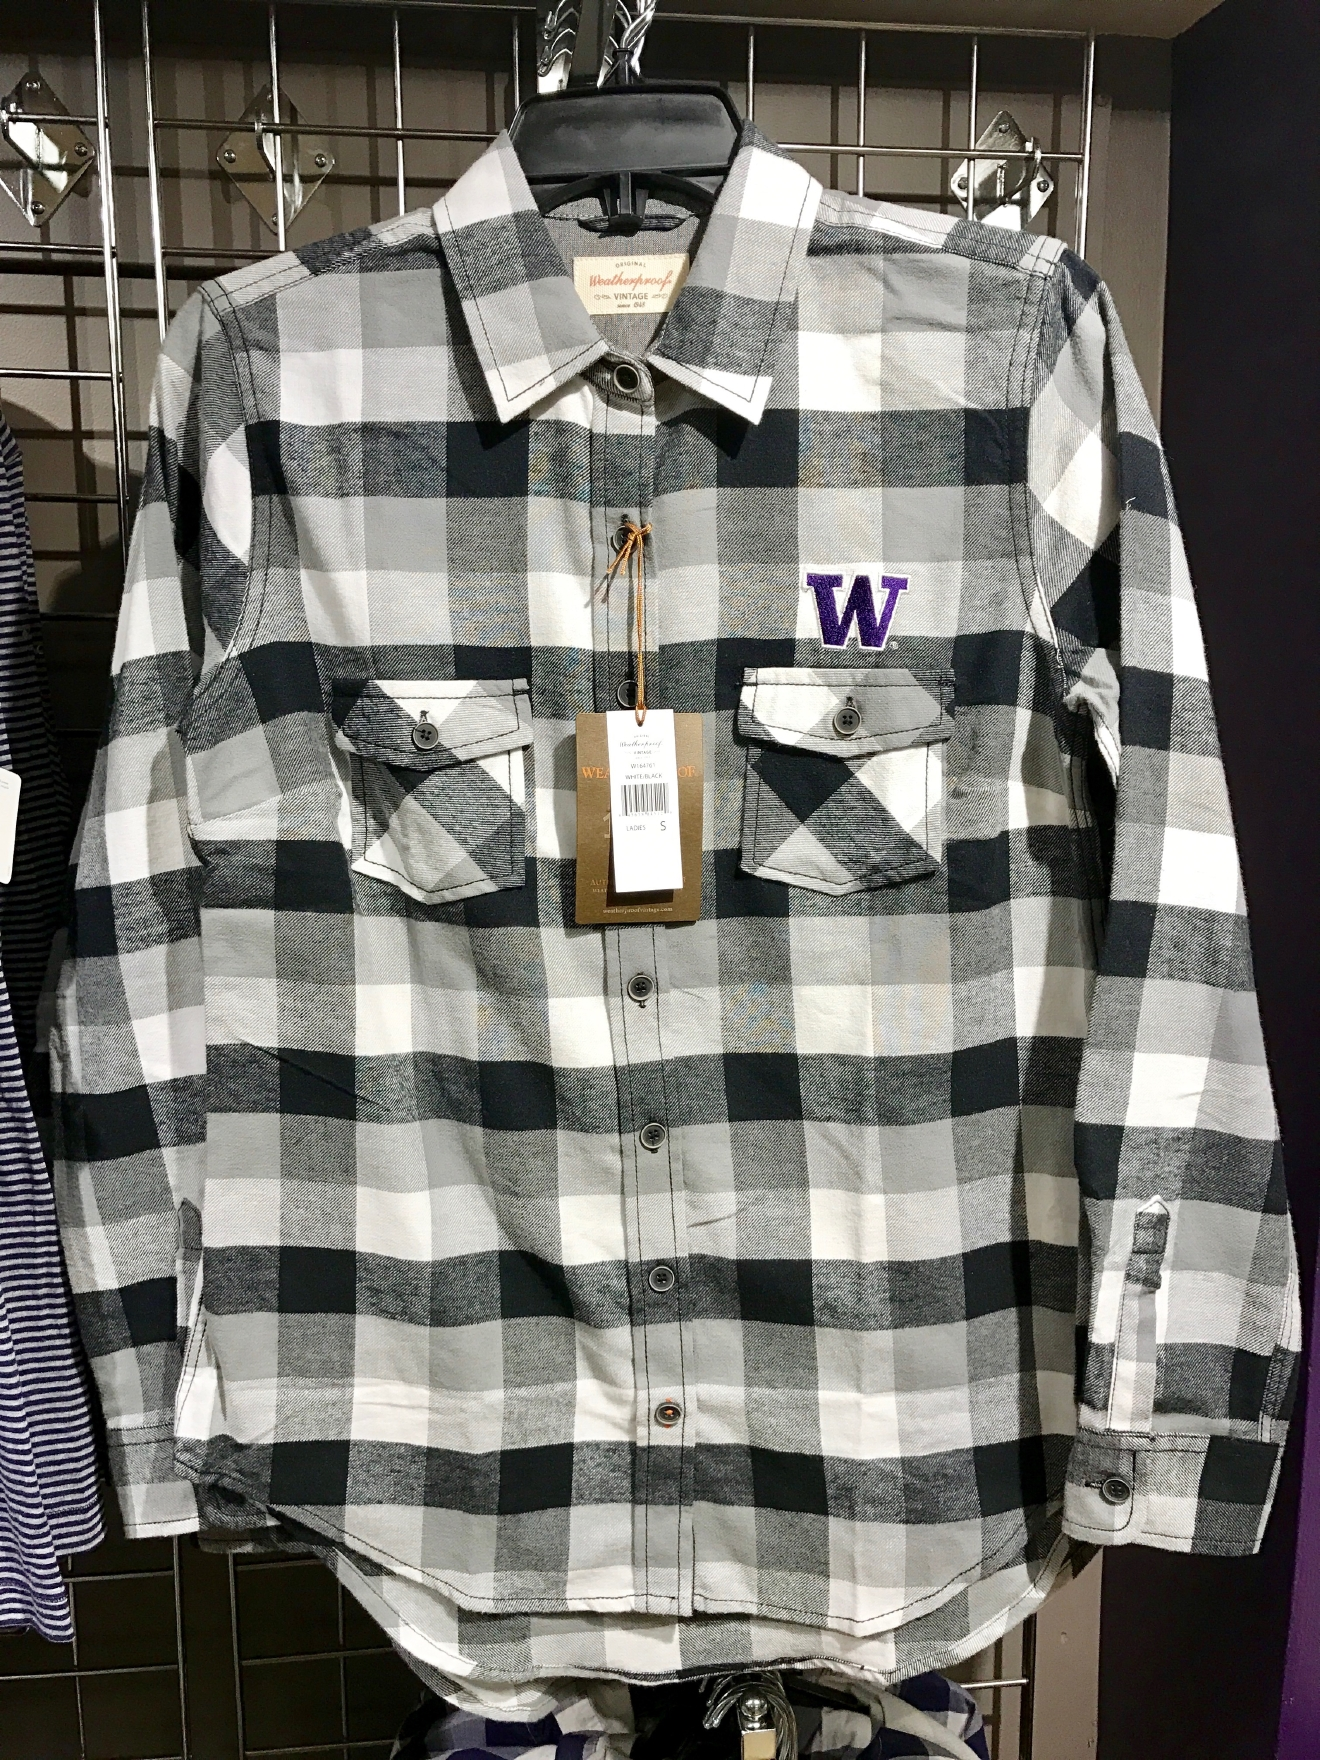 UW Plaid Shirt - $60                                          Whether you're a current student, alum, or just *love* the Dawgs, it's a pretty exciting time to be a Husky fan right now. Just to catch you up, the University of Washington football team is having one of their best seasons in years, and will be playing the Peach Bowl in Atlanta on December 31st. If you know a Dawg fan, they're probably salivating at the mouth right about now. Which is why it's a perfect time to give them a themed gift! Here are some of the coolest Husky gear we saw at the University Bookstore on the Avenue during our last visit. Pro Tip: They're open 10 a.m. - 7 p.m. on Christmas Eve! (Image: Britt Thorson / Seattle Refined)